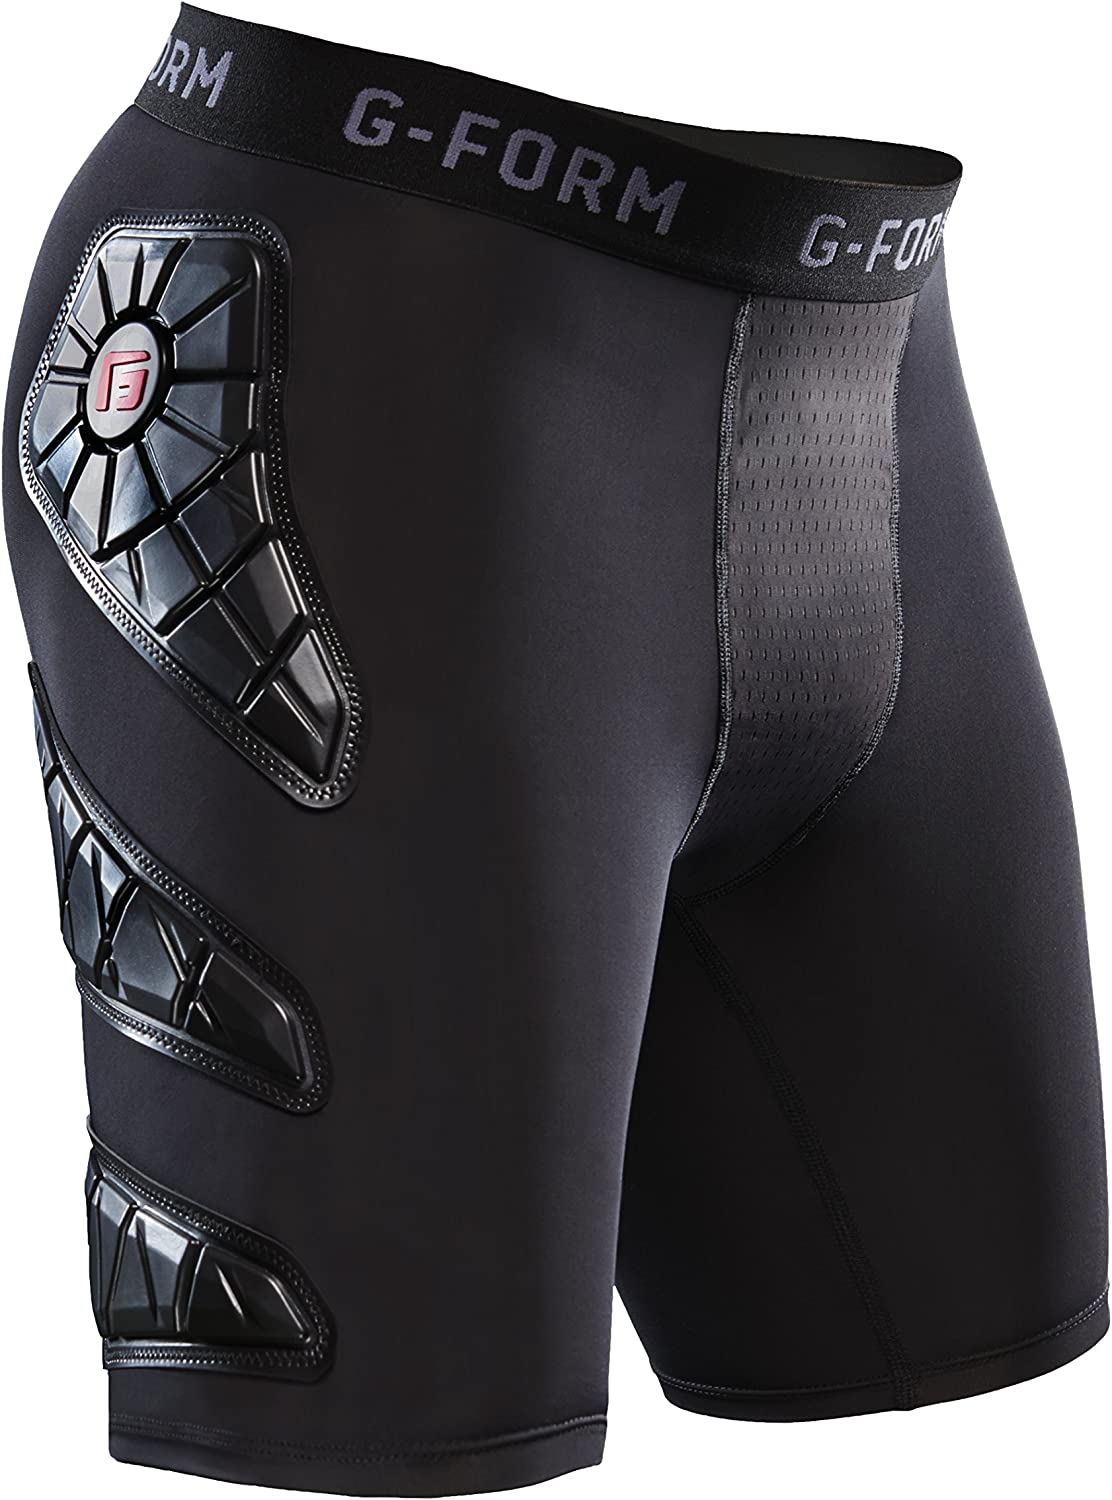 G-Form Baseball Pro Sliding Shorts - Adult and Youth : Sports & Outdoors